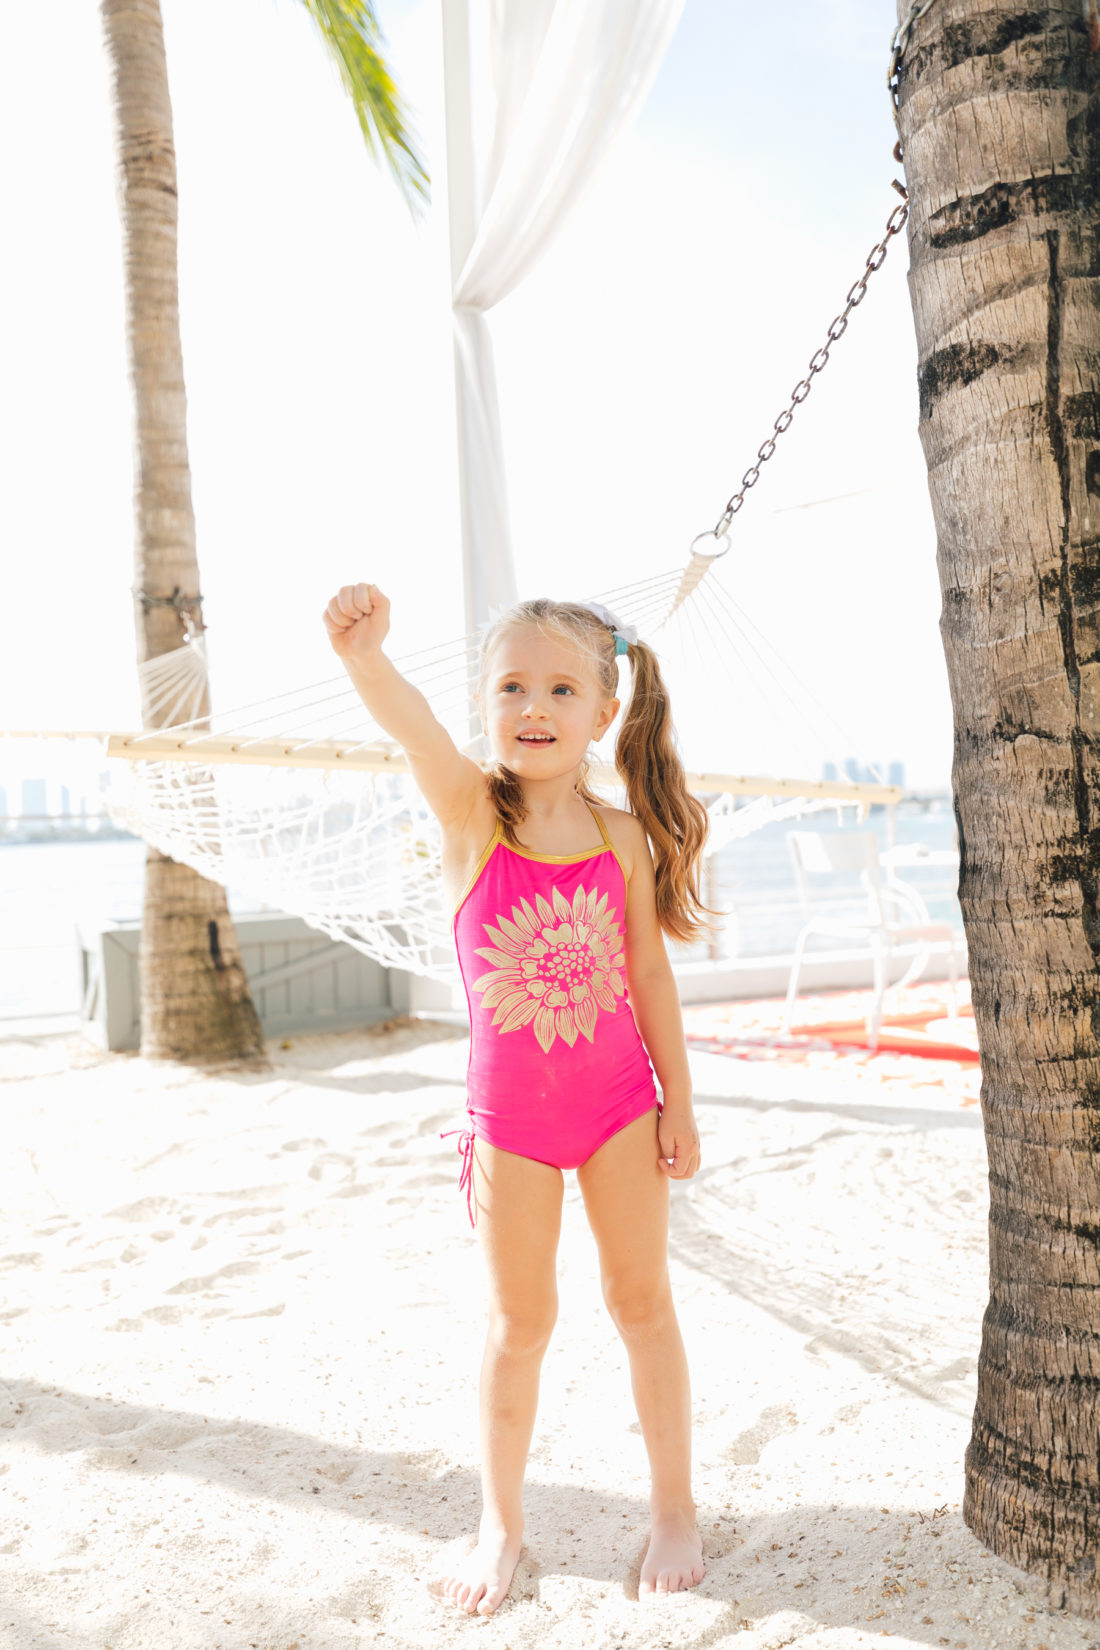 Marlowe Martino wears a pink and gold floral bathing suit on the beach in miami as part of the Happily Eva After x Masala Baby lookbook